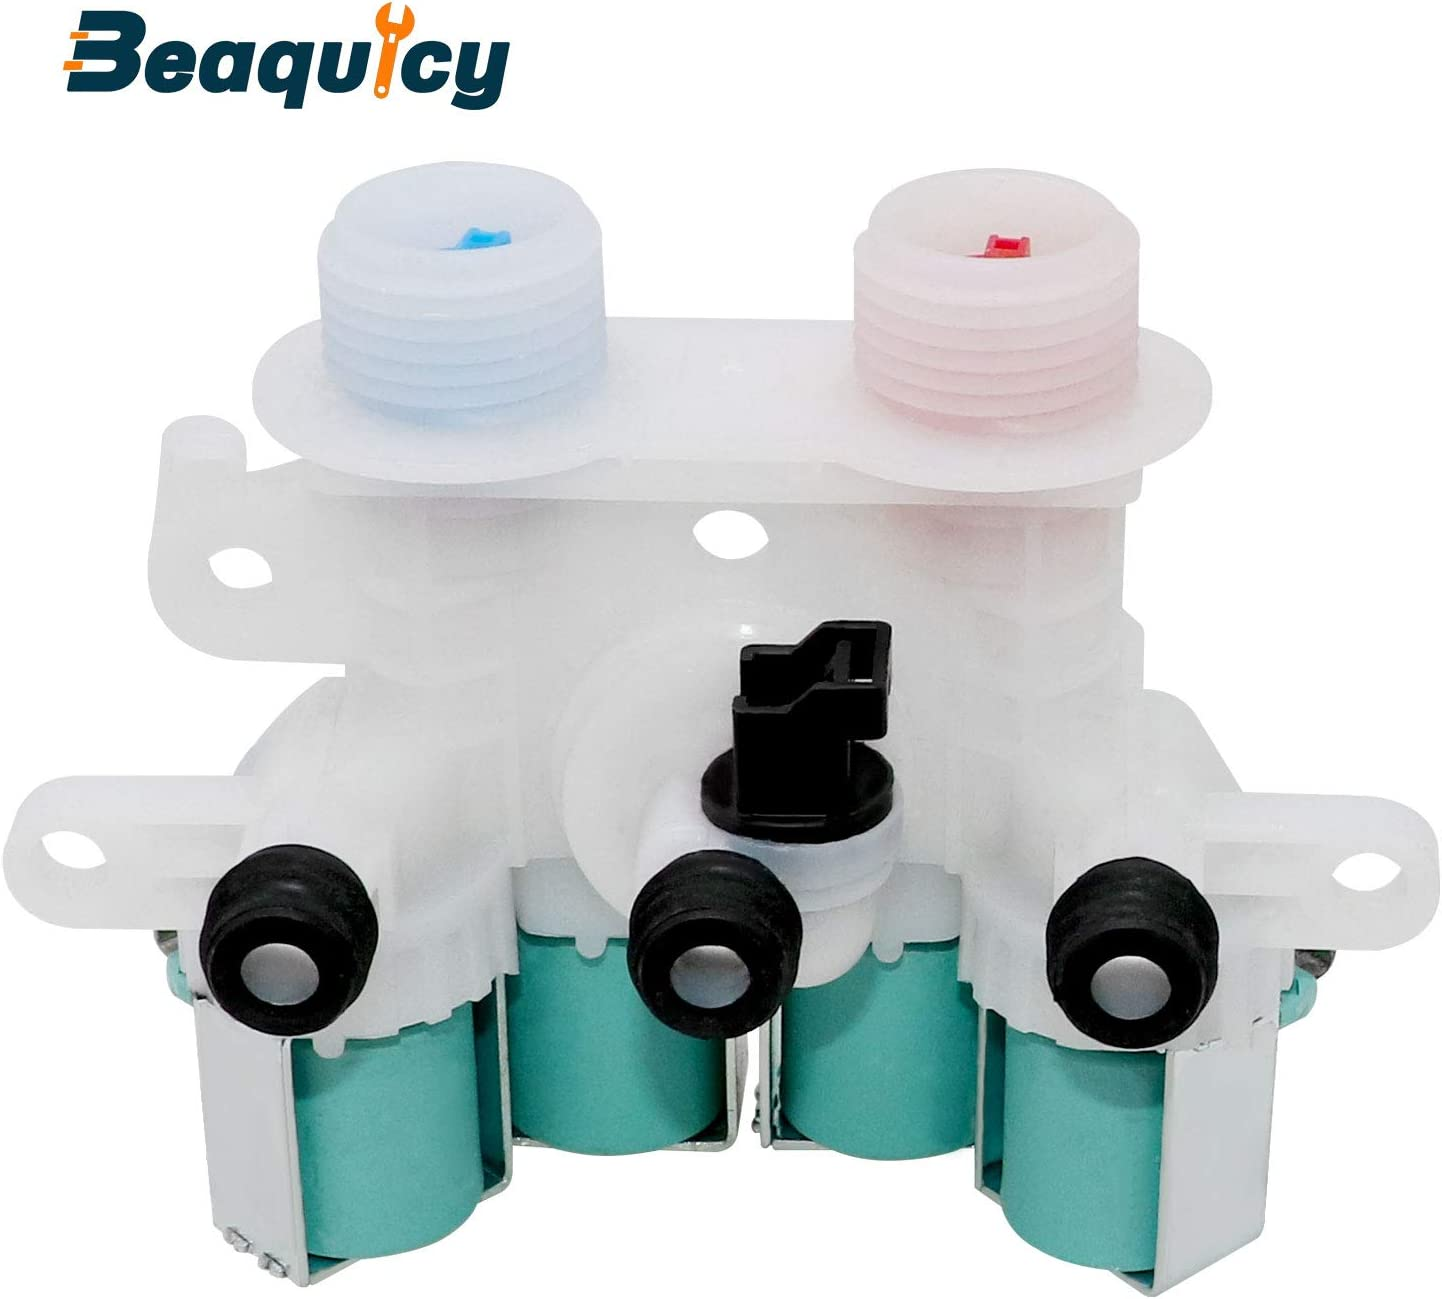 W11165546 Washer Water Inlet Valve GENUINE (OEM PART) by Beaquicy - Replacement for Whirlpool Kenmore Washing Machine - Replaces 33090105 W10599423 W10758828